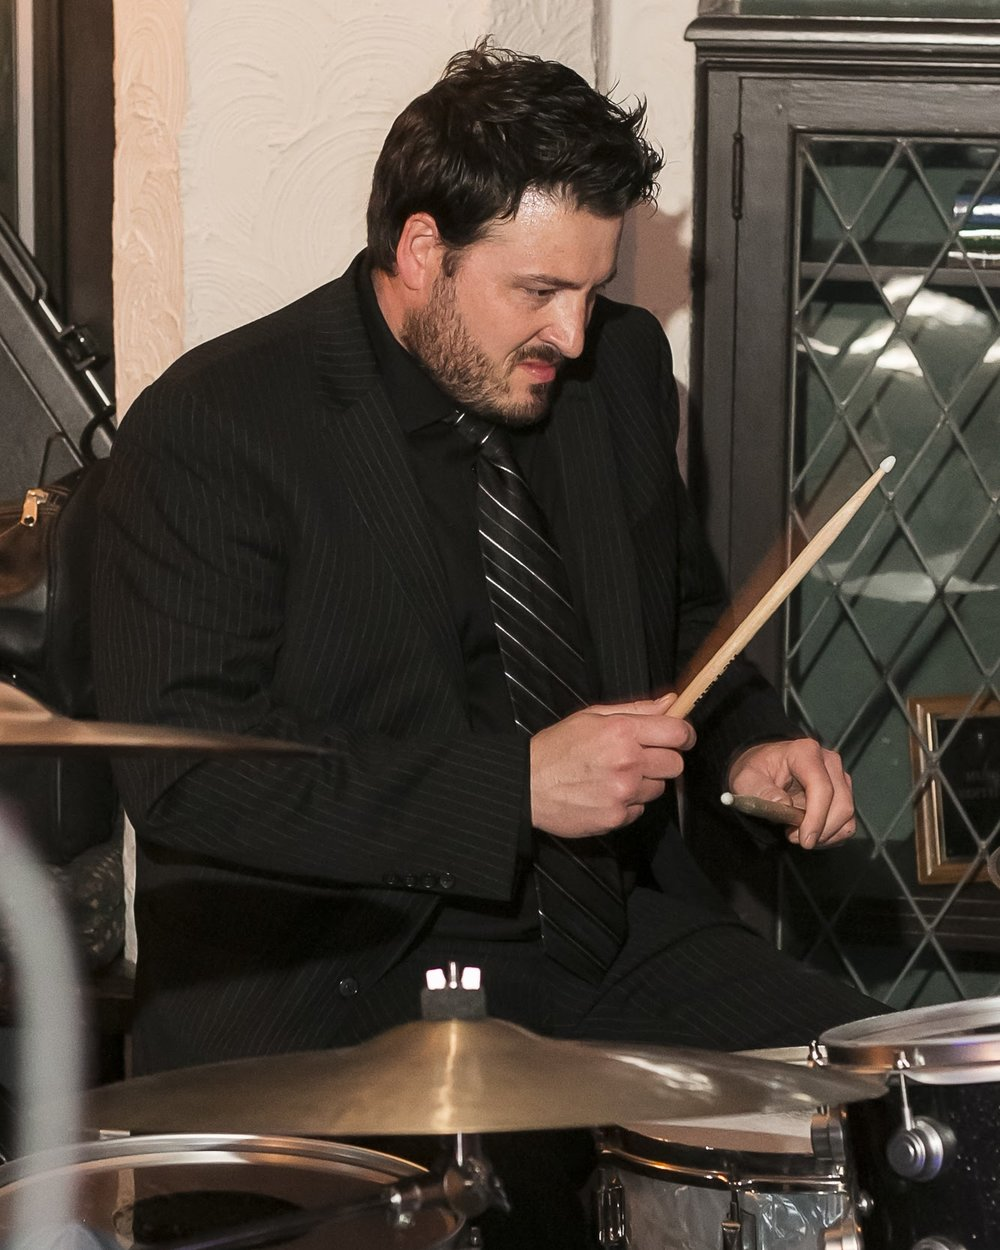 GREGG DRUMMS Our drummer. He didn't drool nearly as much as most of them we know so we kept him. He's not your buddy, friend. And he's not your guy, buddy. But he does show up on time and keep the rest of this mess from falling apart.